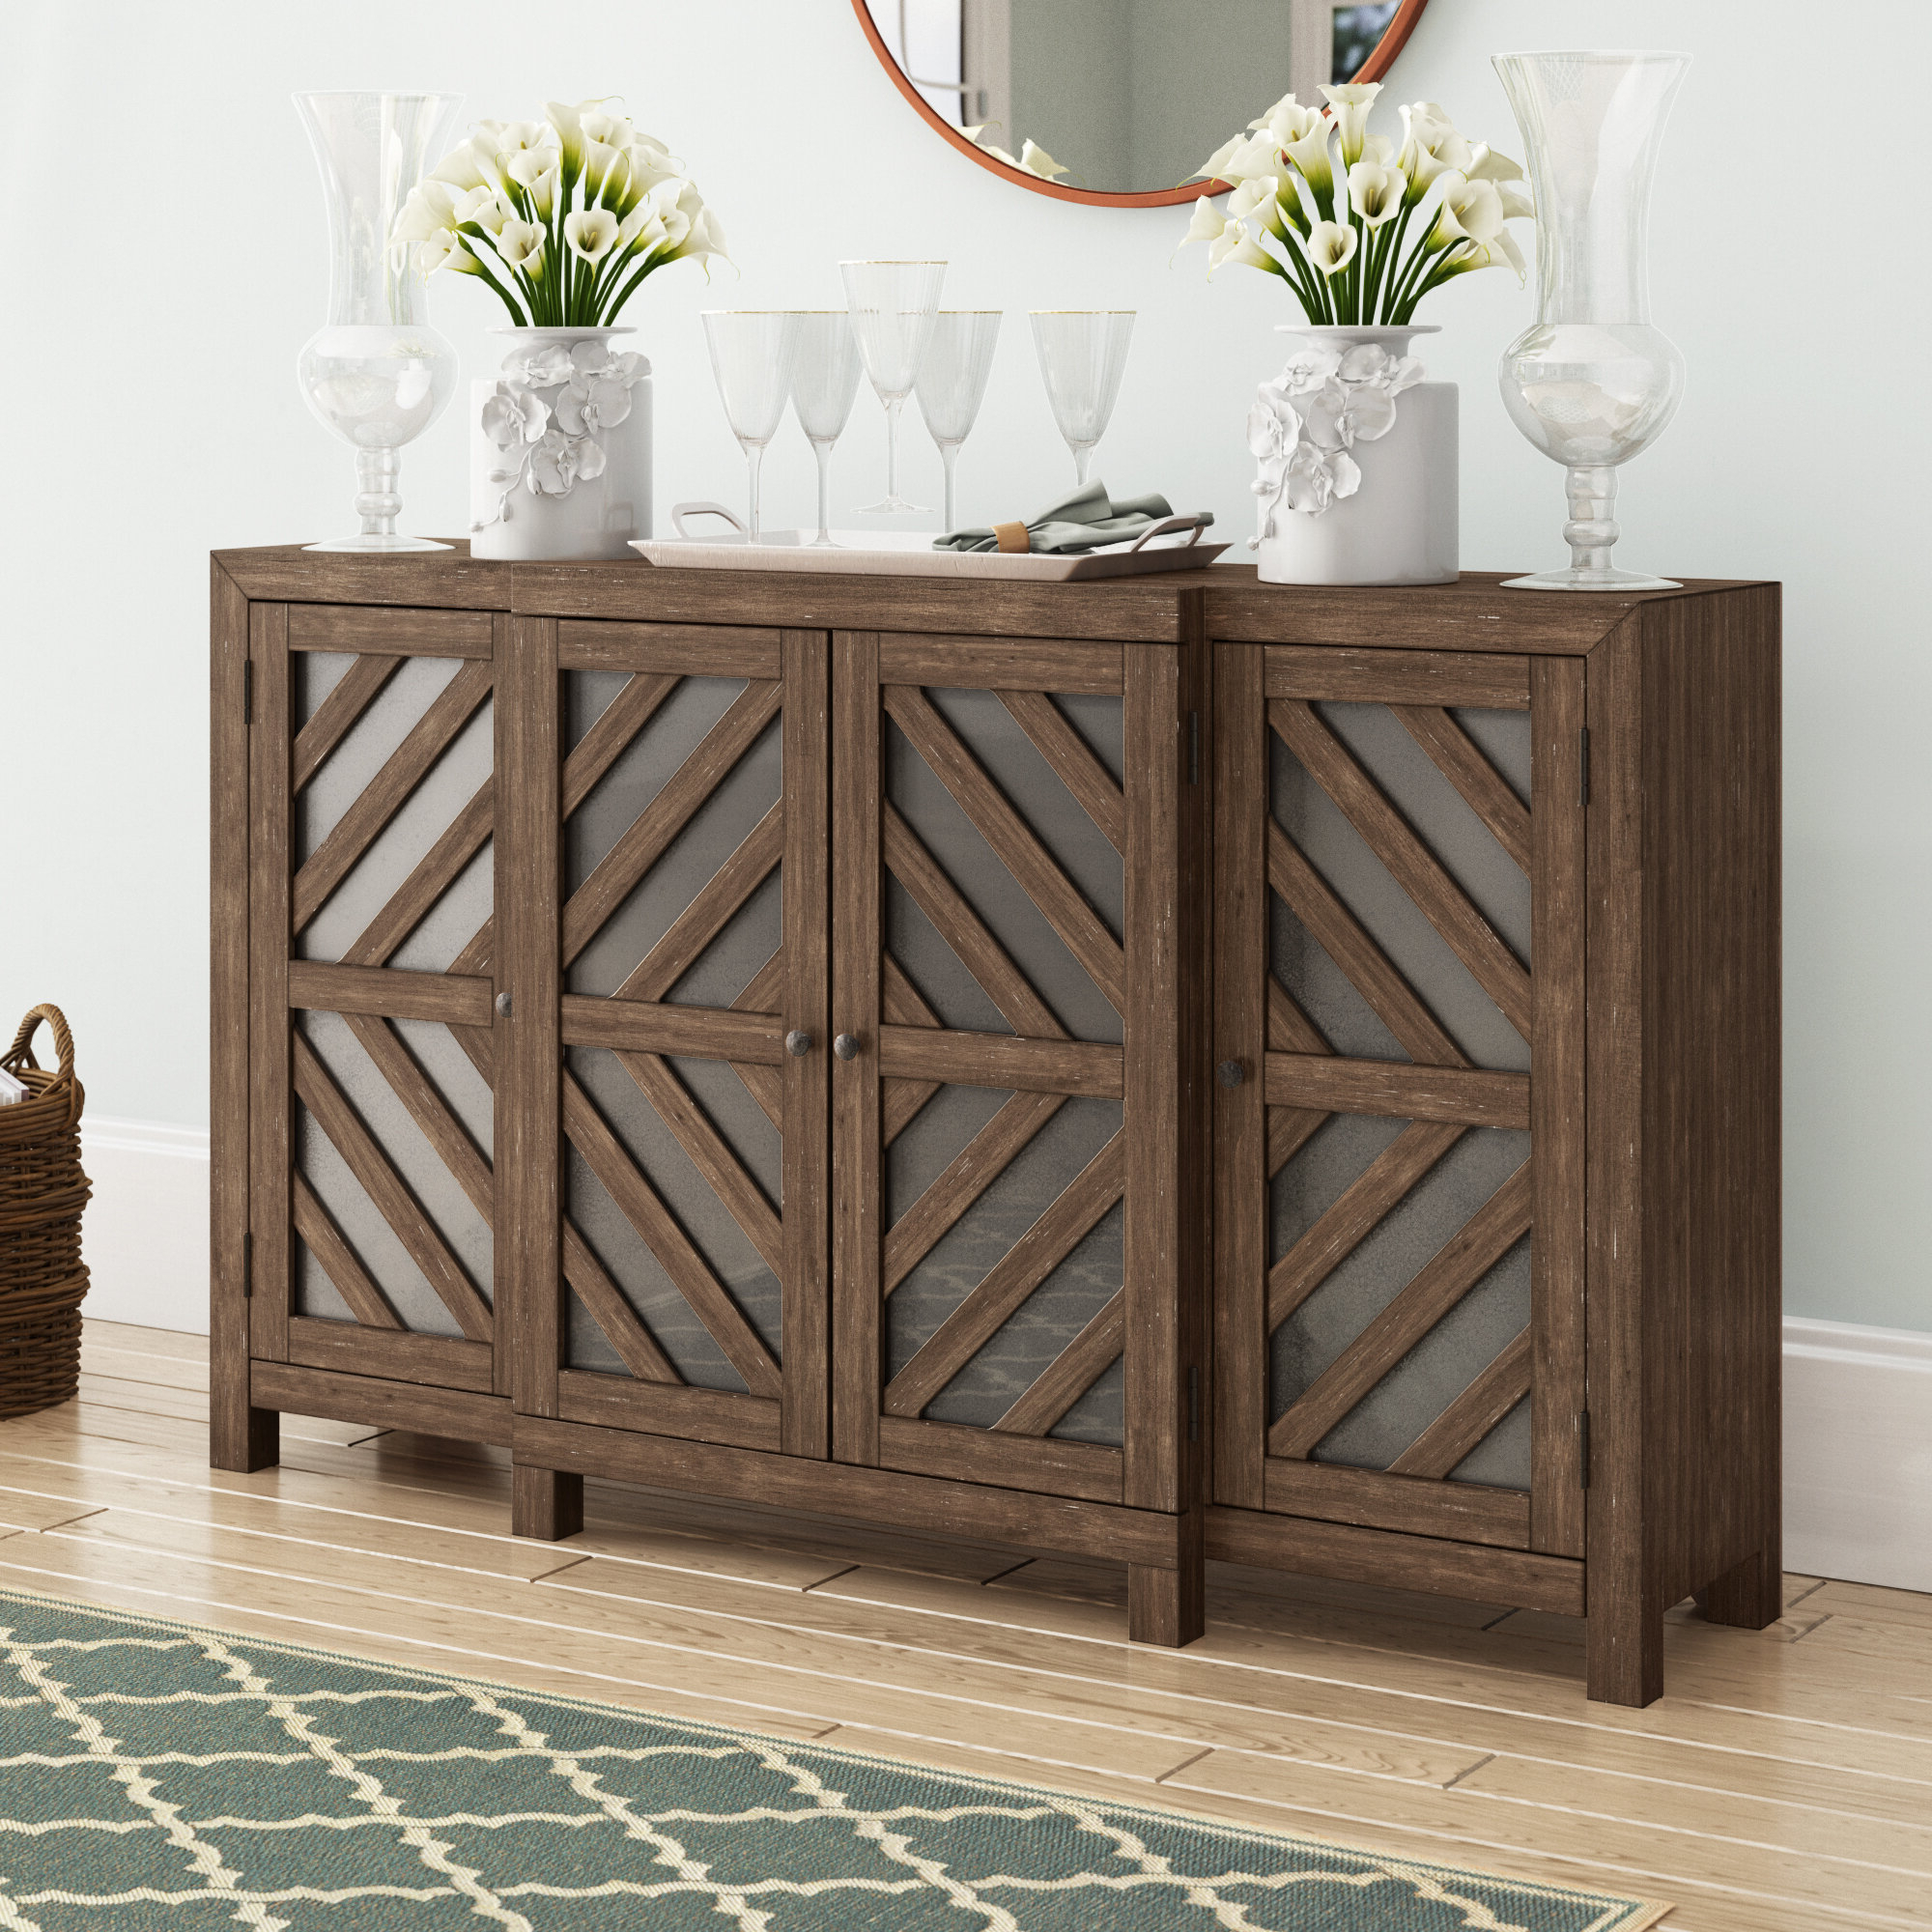 70 Inch Credenza | Wayfair Intended For Abhinav Credenzas (View 4 of 20)